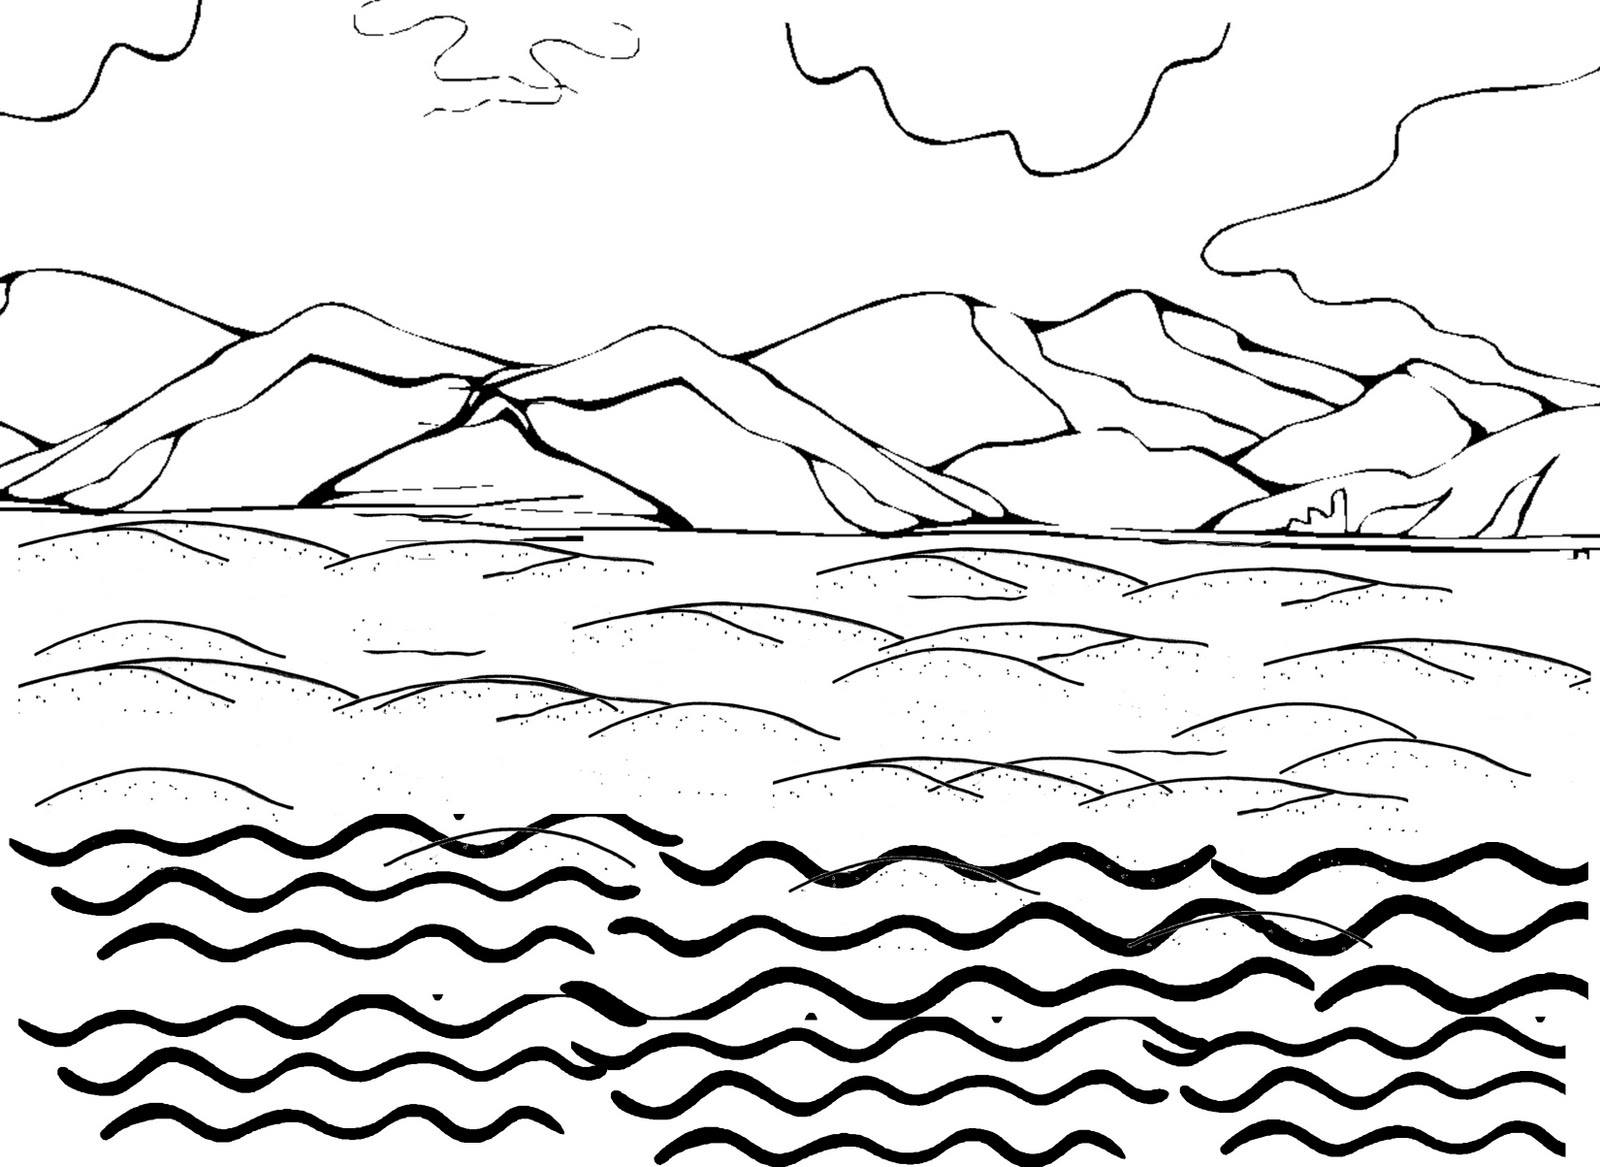 ocean waves coloring pages for kids | Water Waves Drawing at GetDrawings.com | Free for personal ...